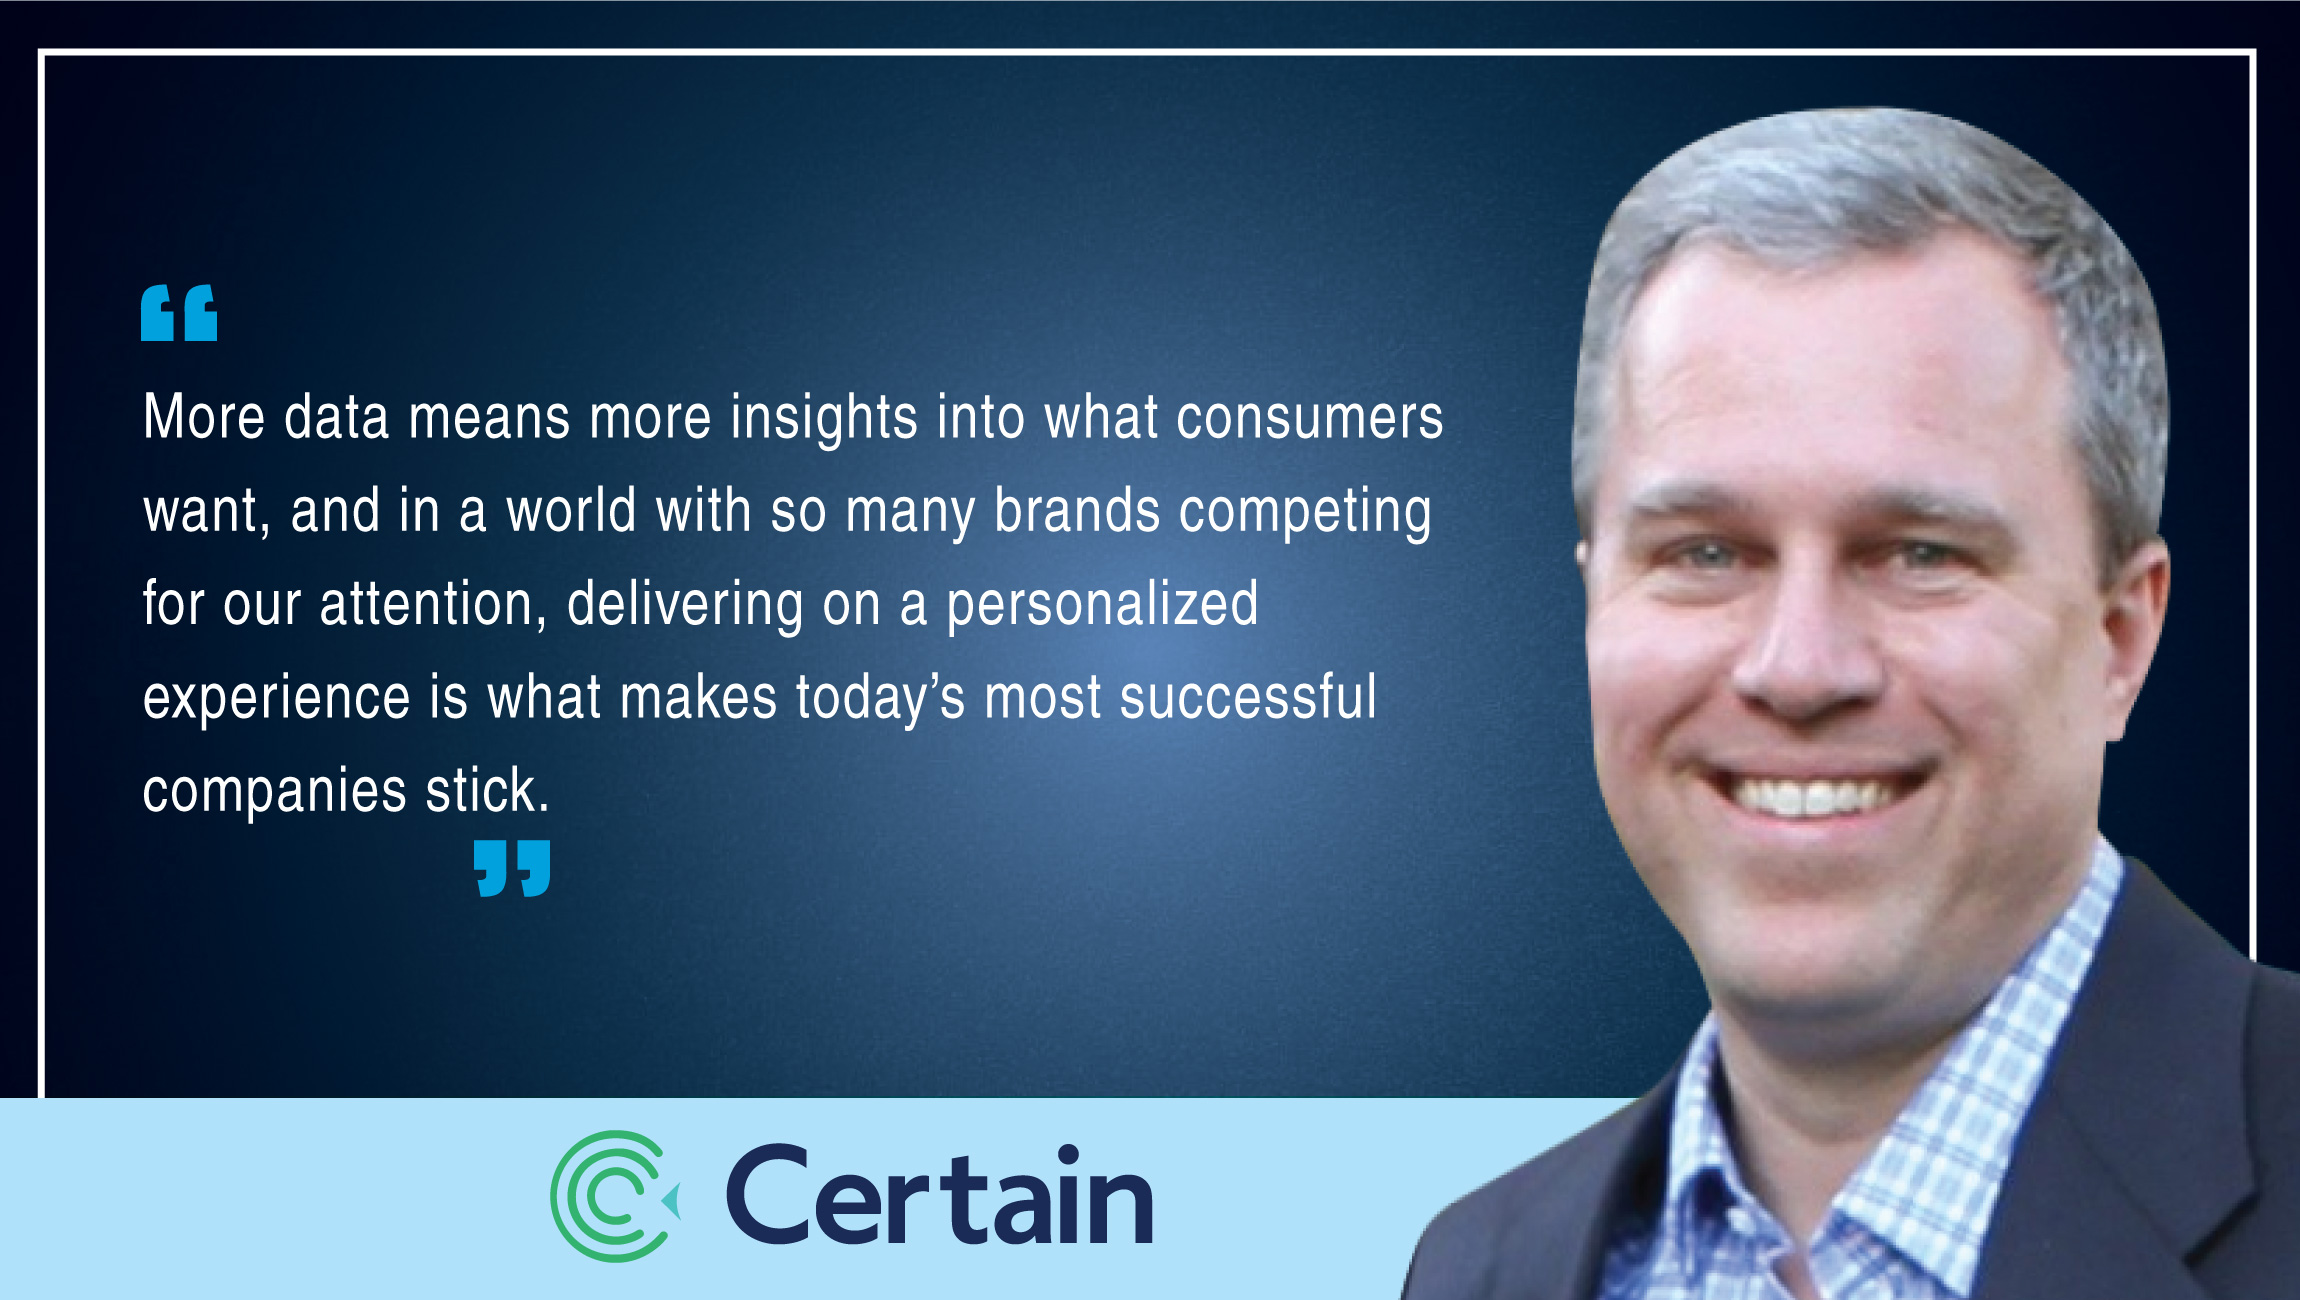 TechBytes with Jon Phillips, VP Product Management, Certain